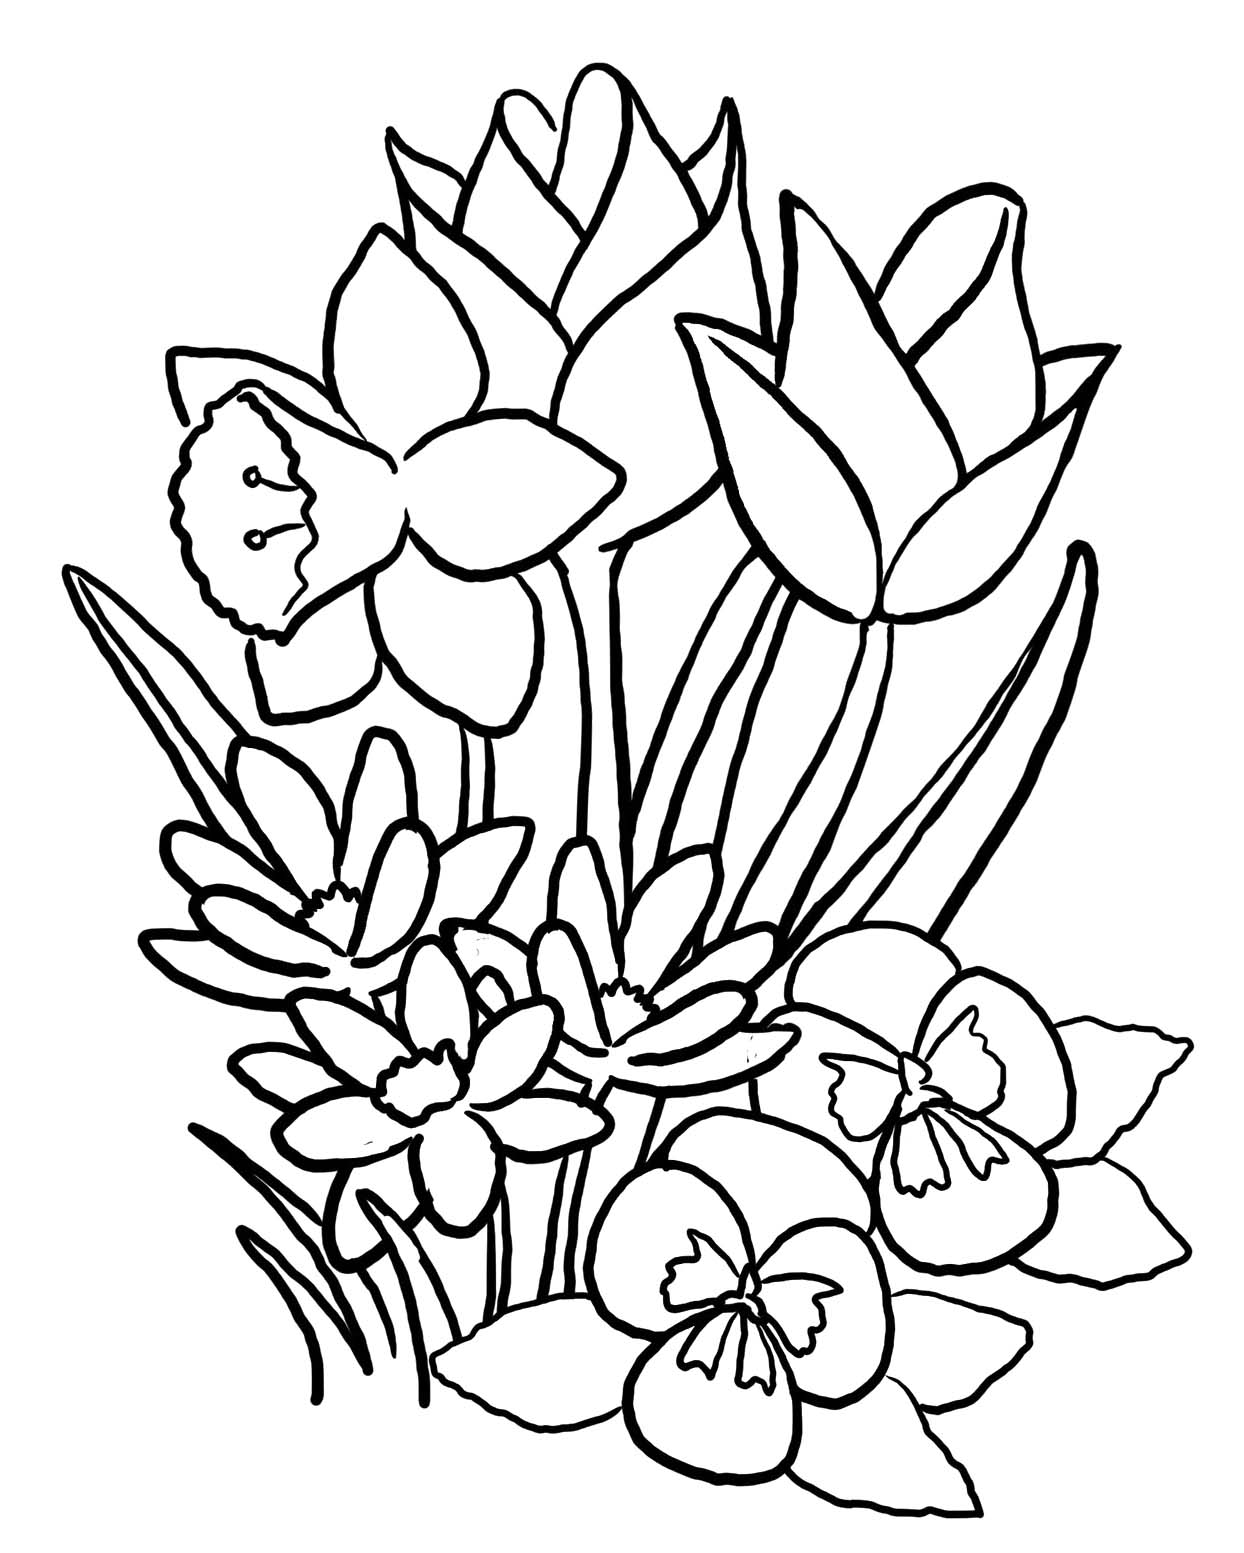 colouring flowers floral coloring pages for adults best coloring pages for colouring flowers